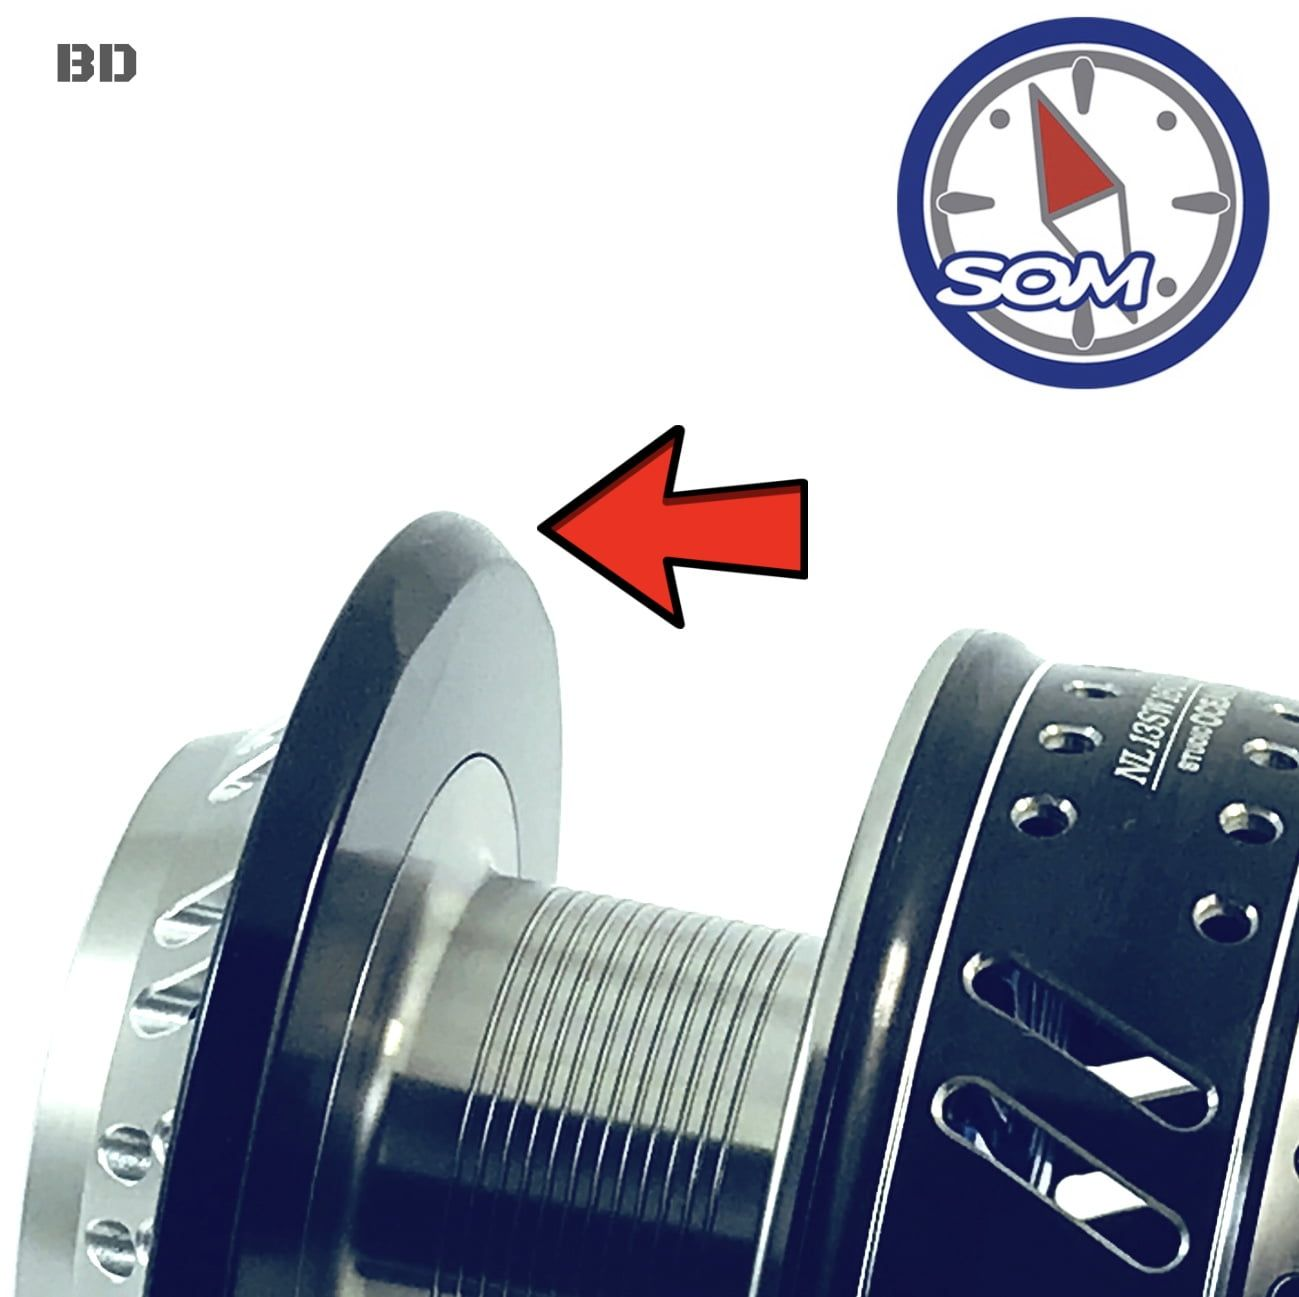 STUDIO OCEAN MARK CUSTOM SPOOL FOR SHIMANO NO LIMIT 16000 ...